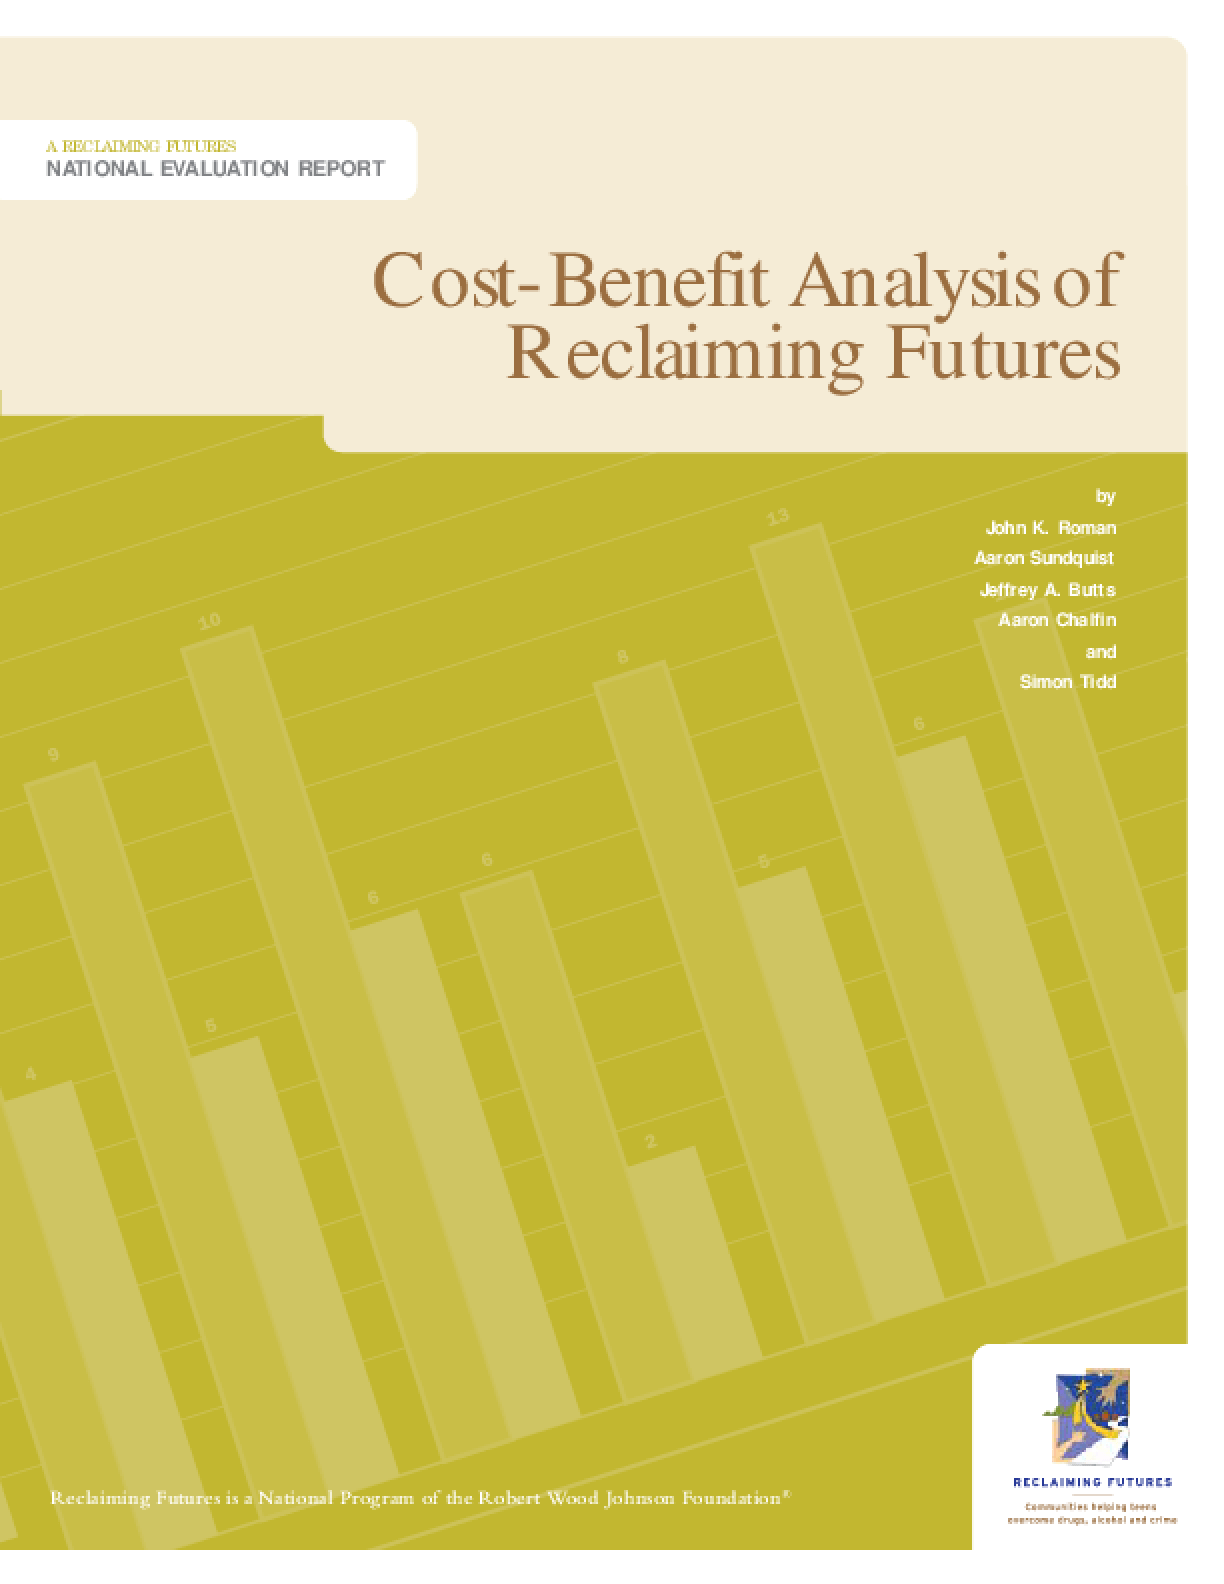 Cost-Benefit Analysis of Reclaiming Futures